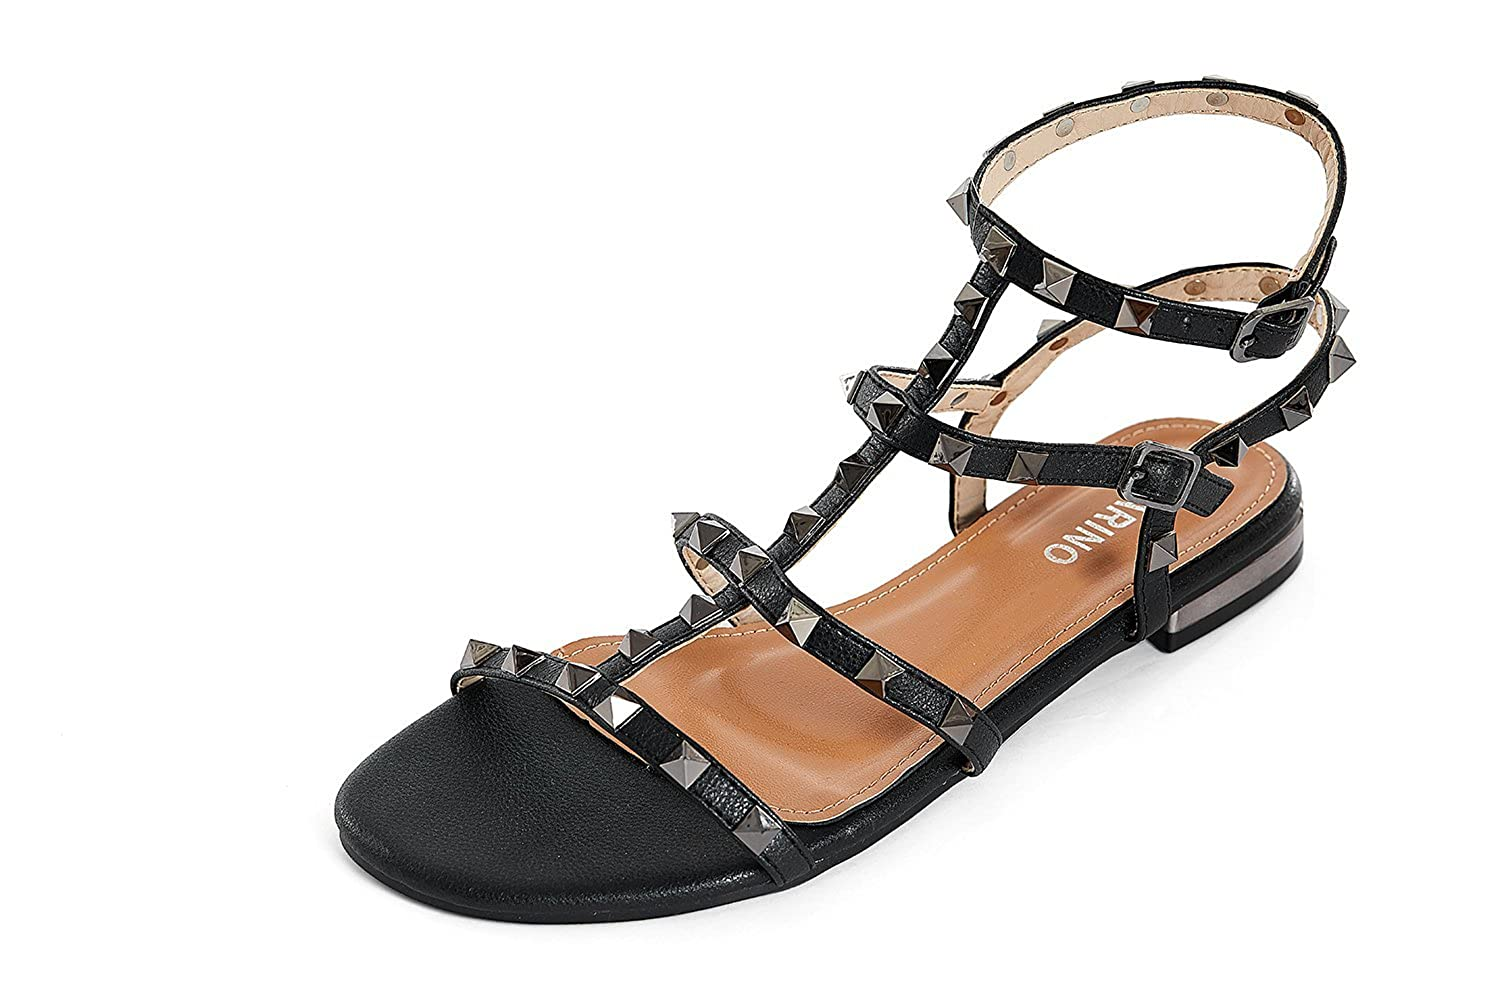 d1ecea3b9e849 MARINO Women's Summer Gladiator Sandals Beach Flat Slippers Elastic Buckle  Casual Outdoor Holiday Comfy Sandals Shoes for Women (Black): Amazon.co.uk:  Shoes ...